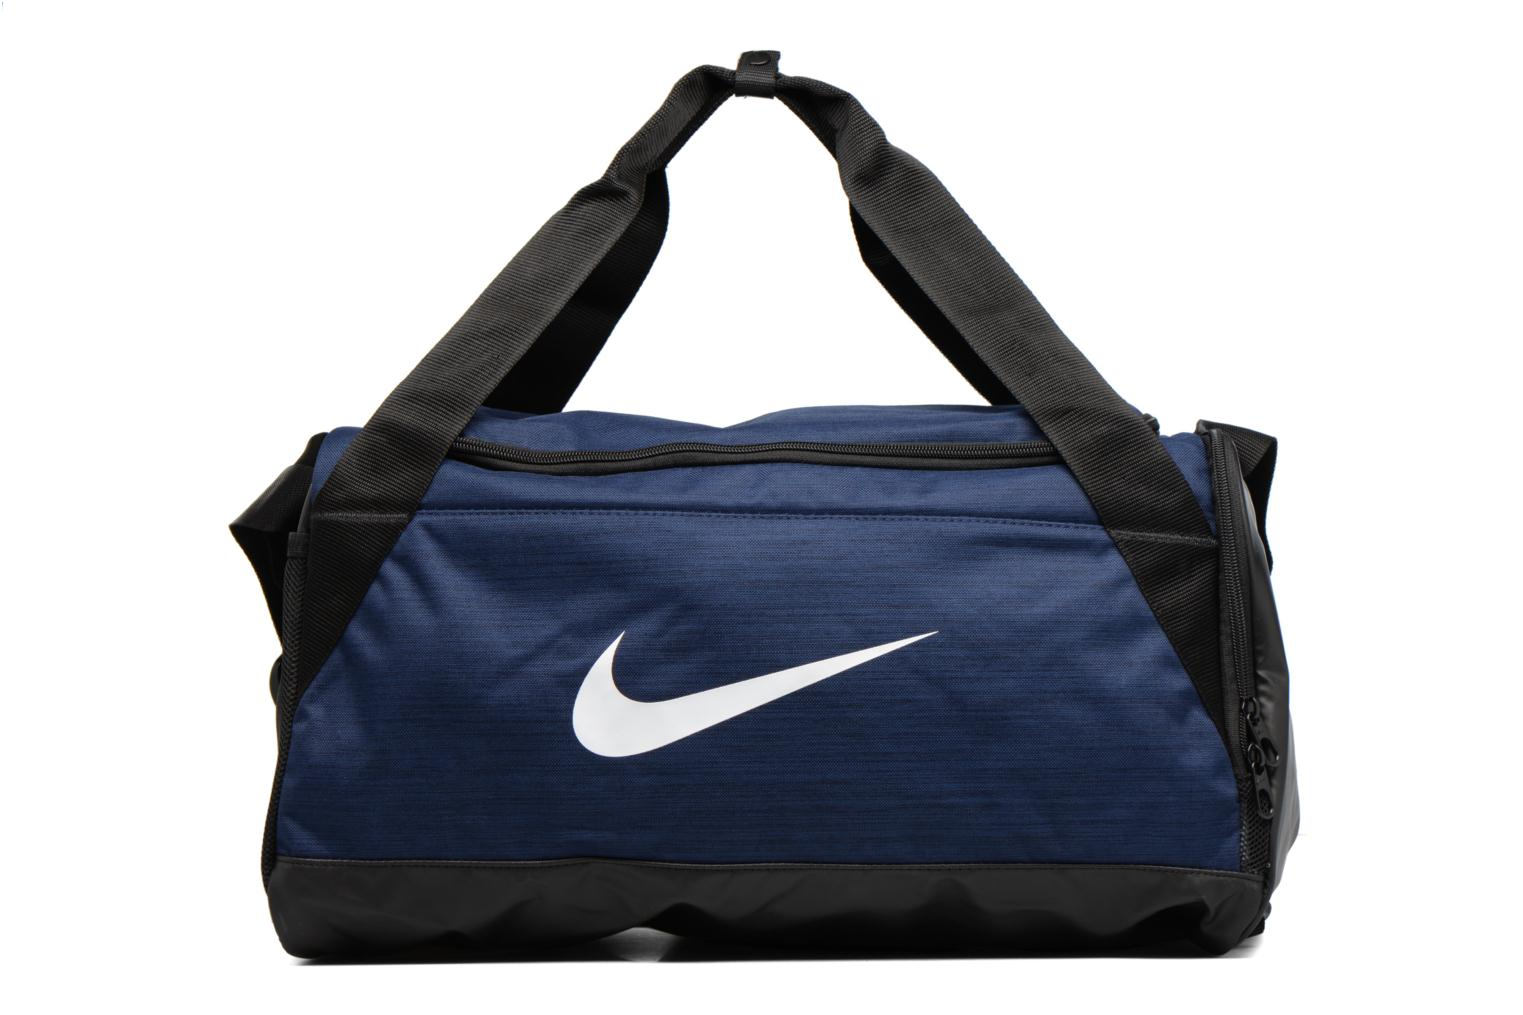 Nike Brasilia Duffle bag S Midnight navy/black/white